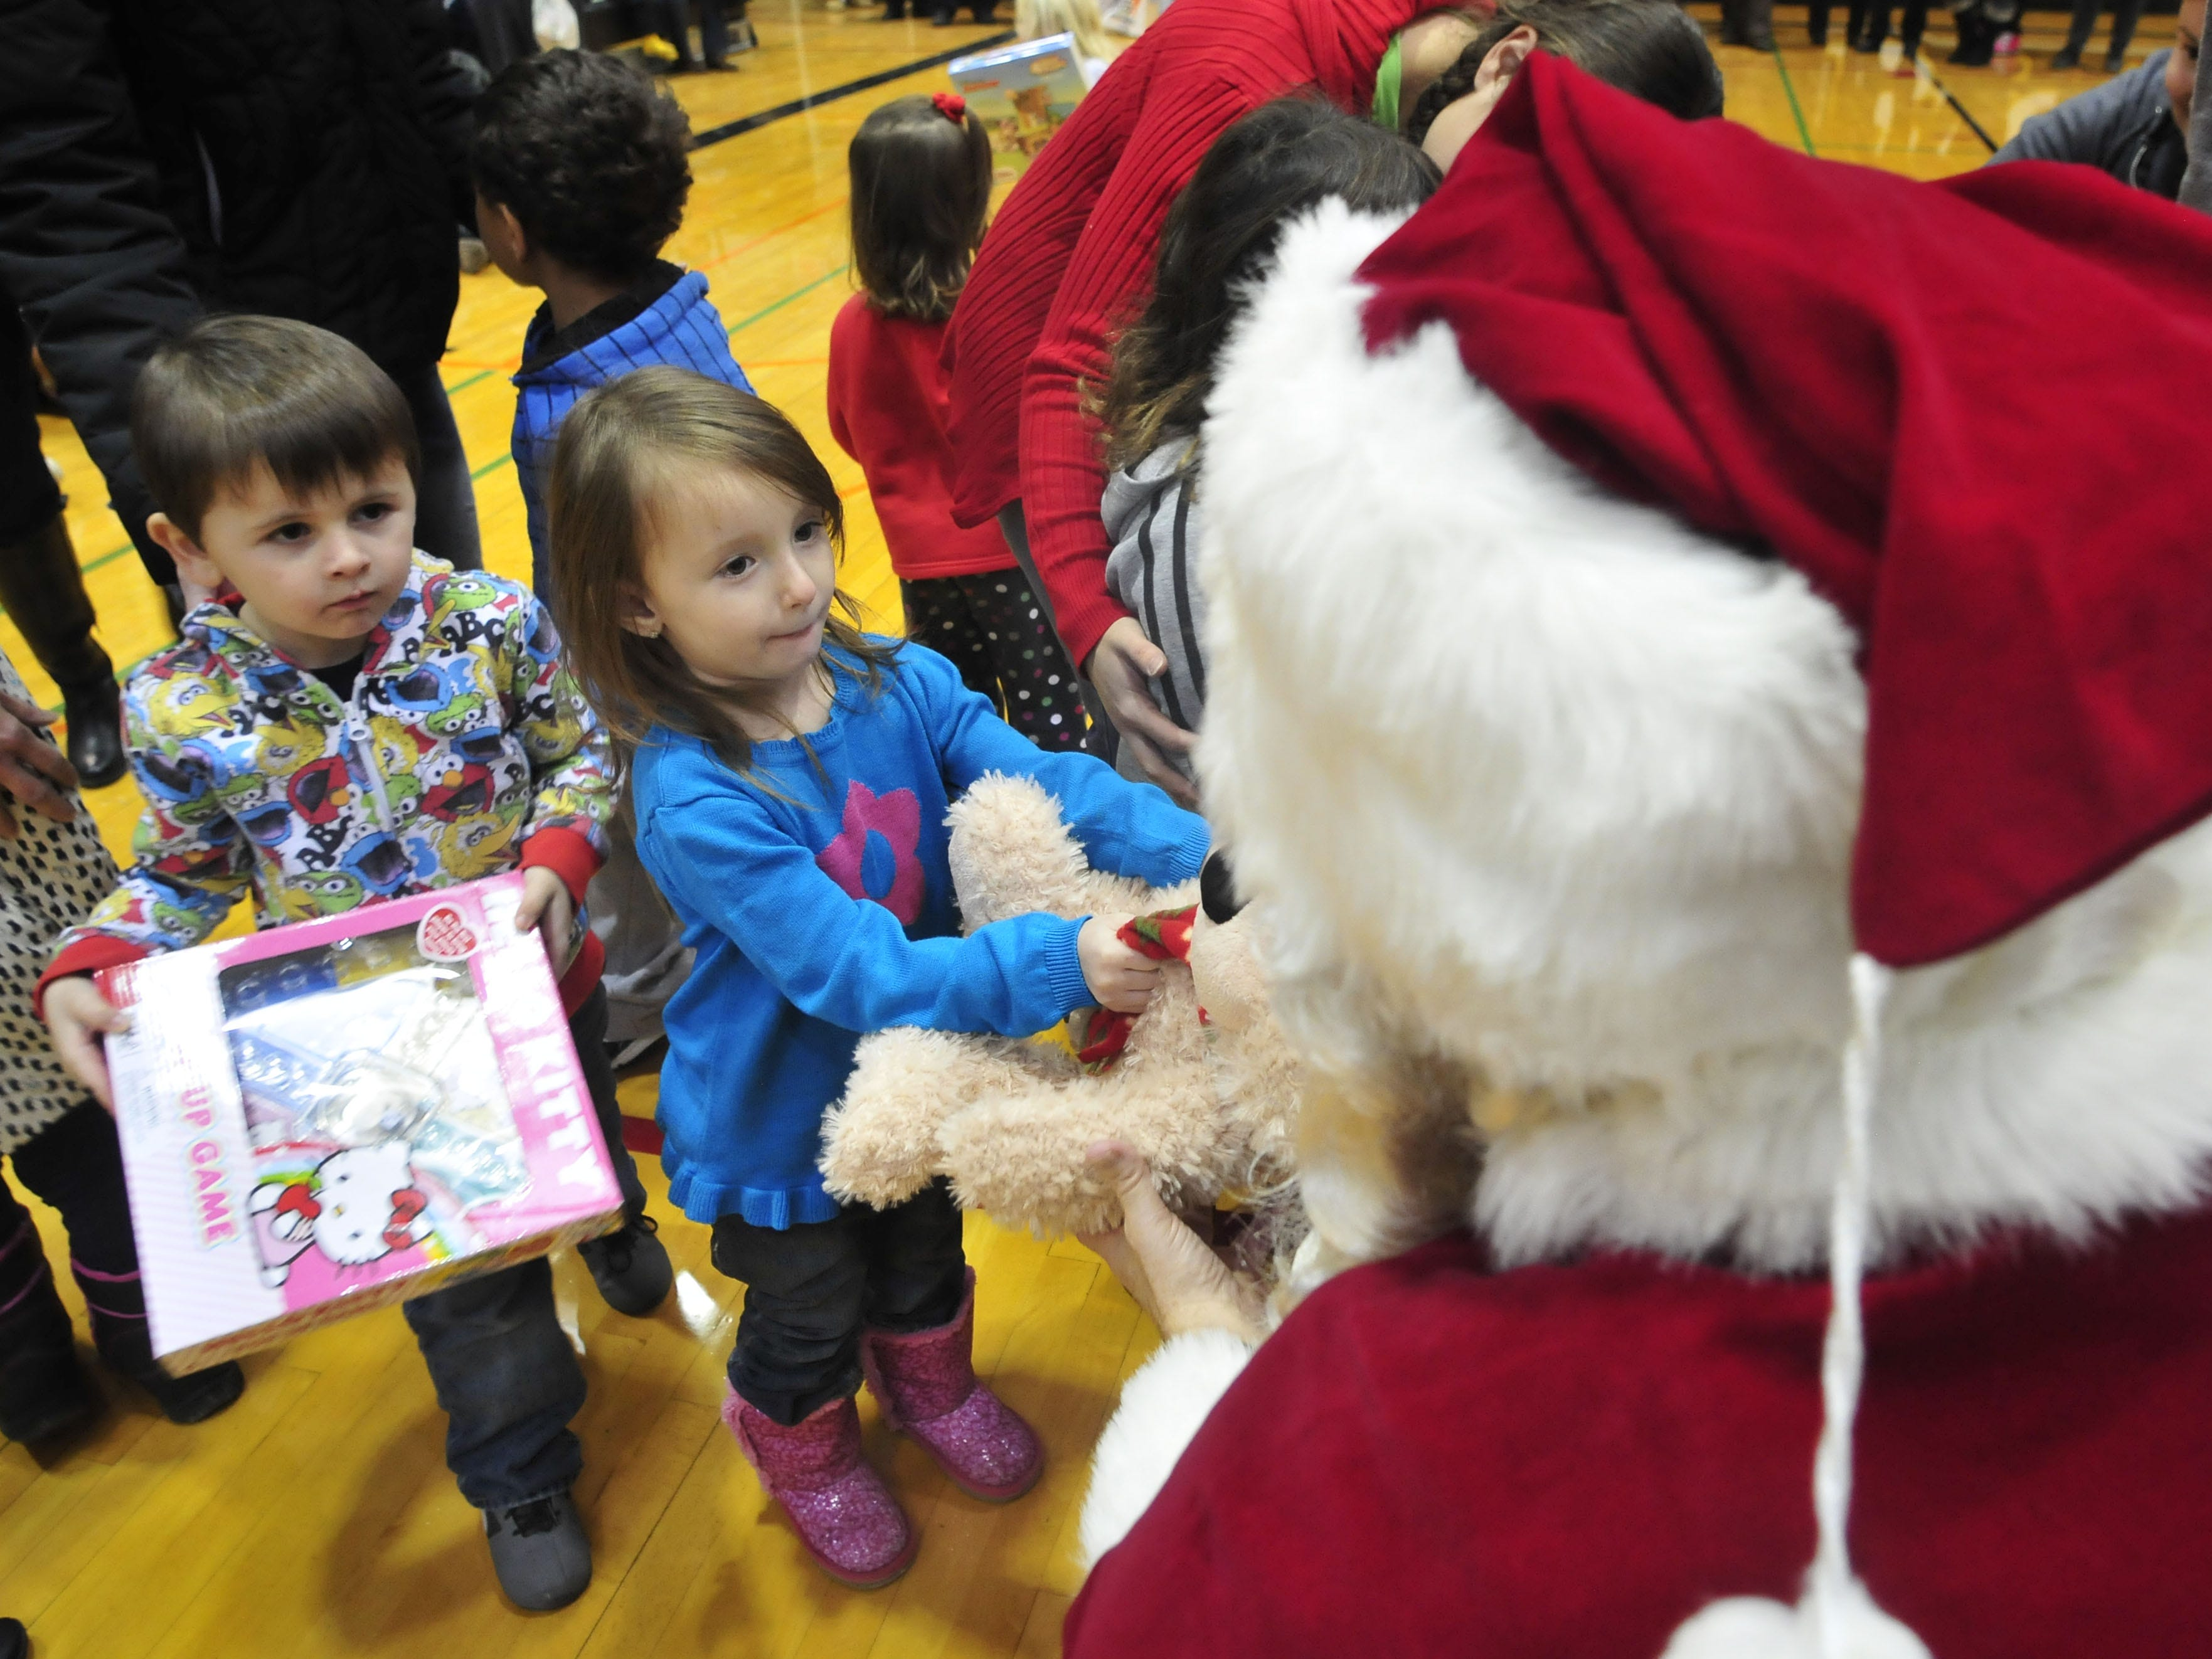 In 2013, Lily Davailus, 3, and Gavin Scheepsma, 4, both of Binghamton, hand Santa Claus toys during the 18th annual Giving of the Toys at SUNY Broome Community College. Brain Haas, below, a Binghamton resident and member of student assembly, helprf organize toys.